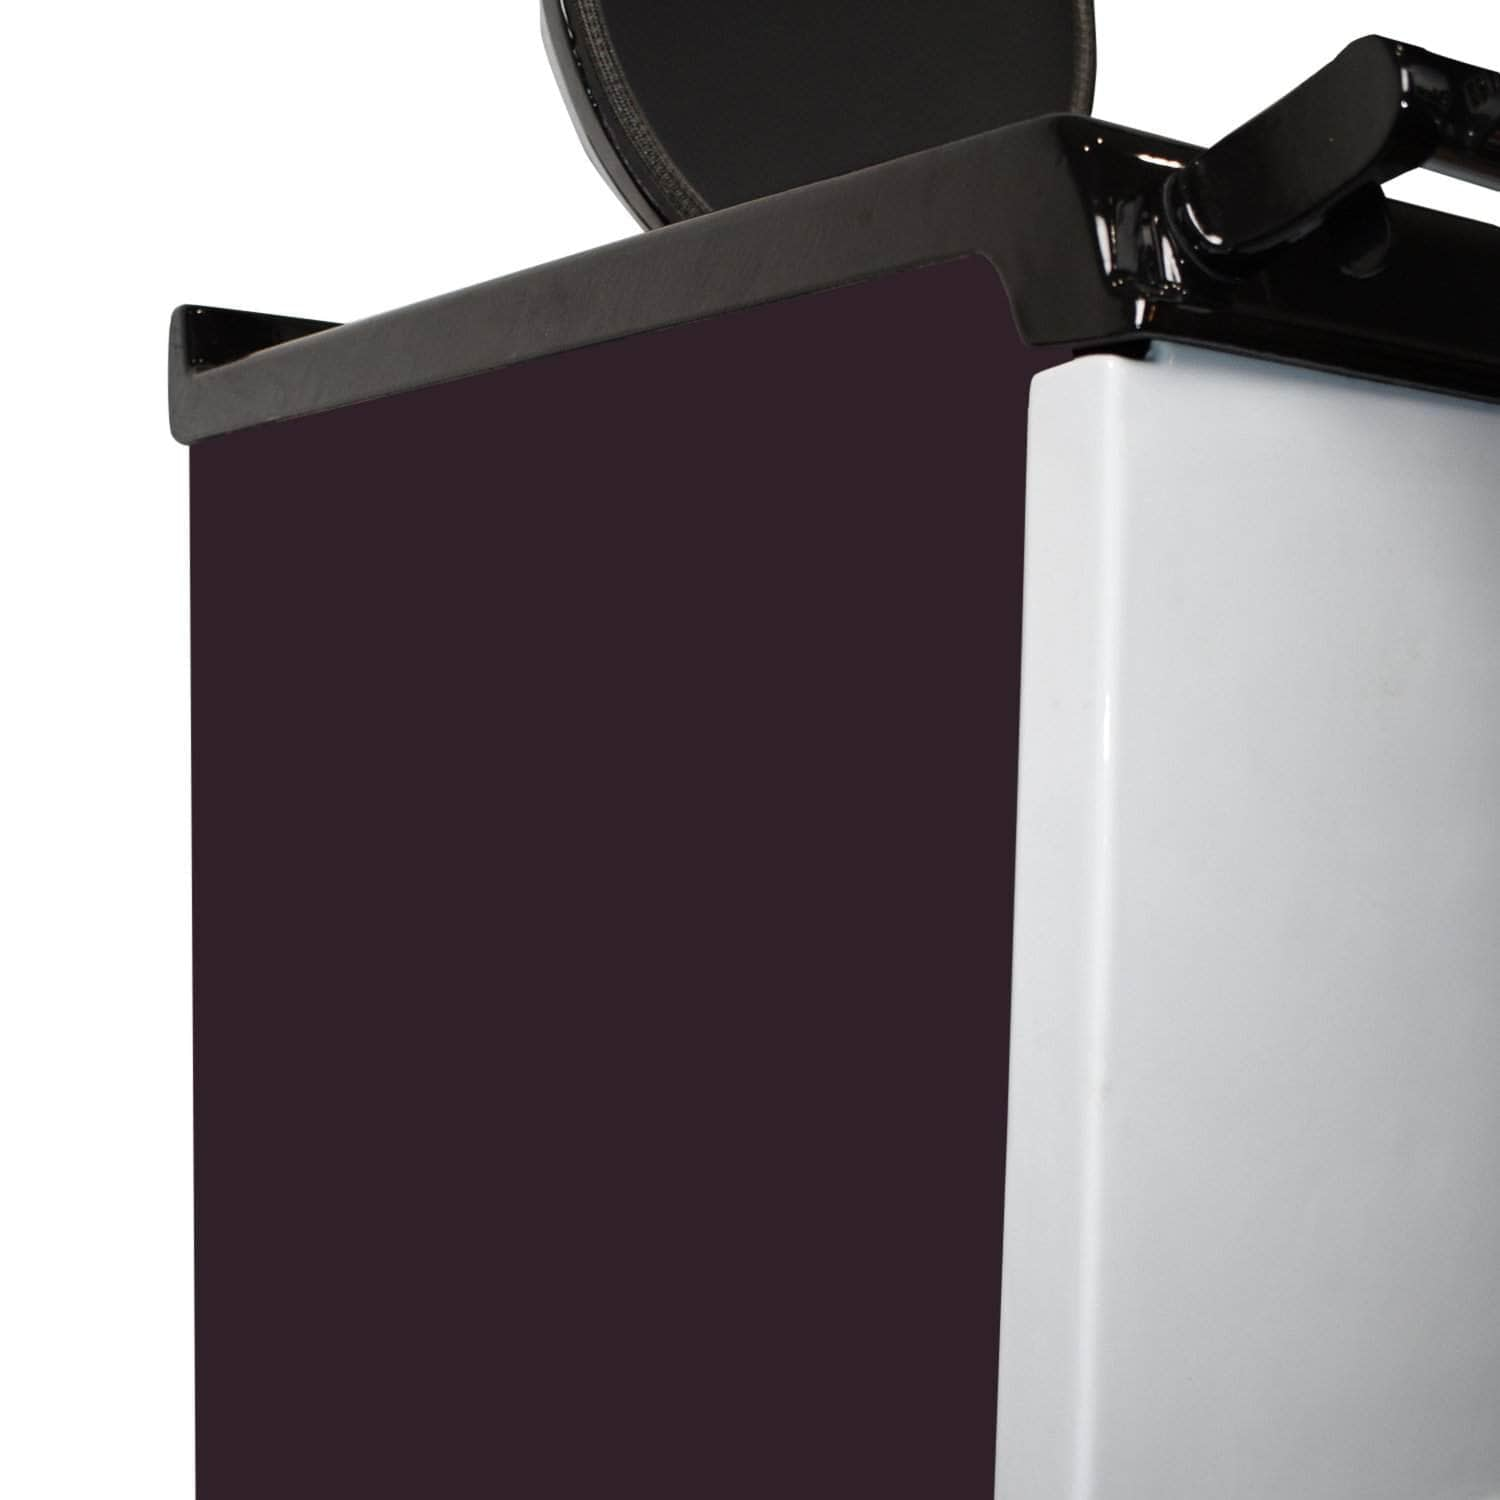 Side panels for use with 'Deluxe' Aga range cookers Aubergine